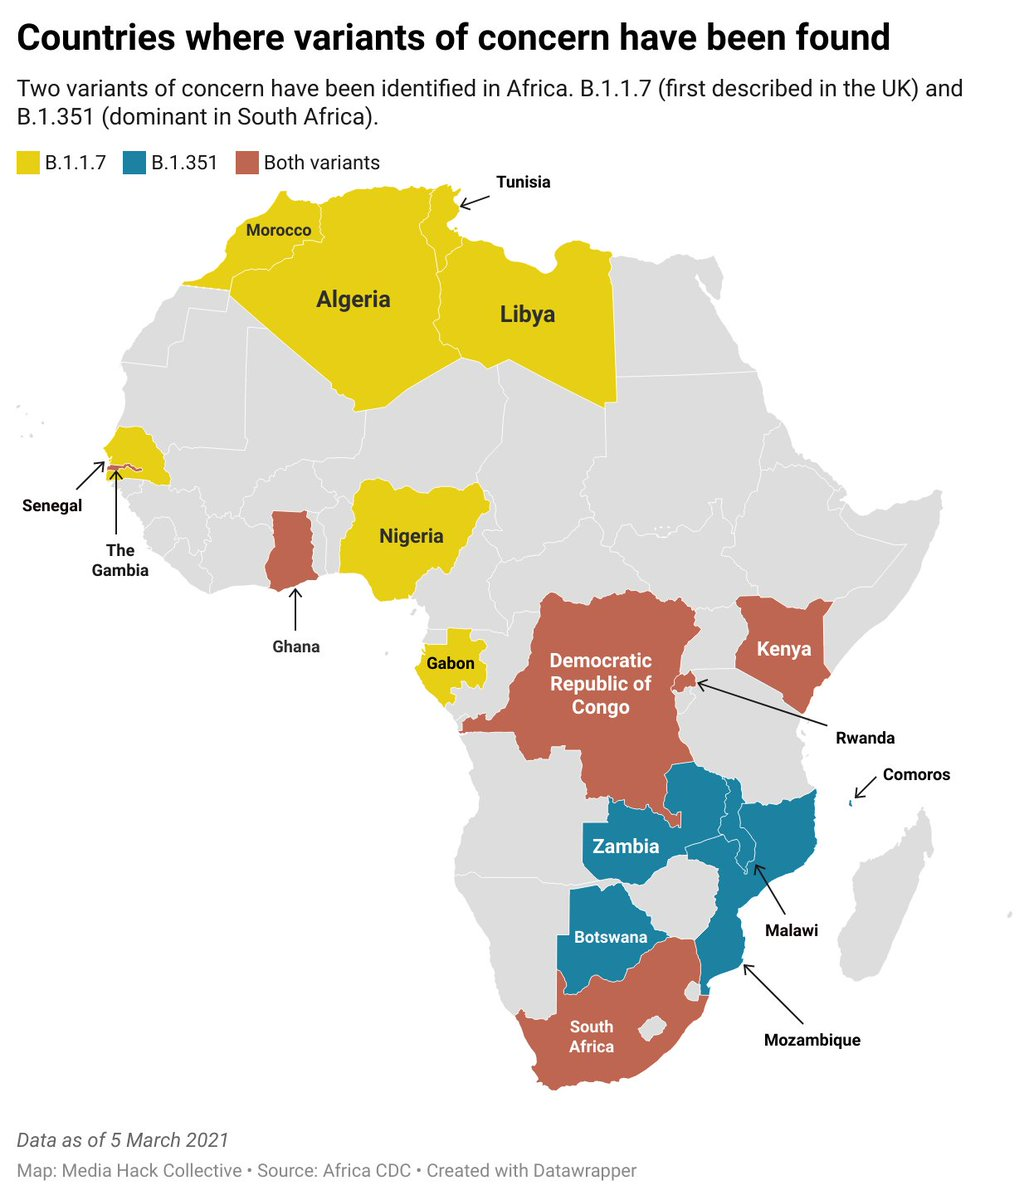 #Coronavirus variants of concern have been found in 18 #African countries, says #AfricaCDC. 5 have B.1.351 (first described in #SA), 7 have B.1.1.7 (first described in #UK). 6 have both #variants🌍  Visit our #covid dashboard for more info: